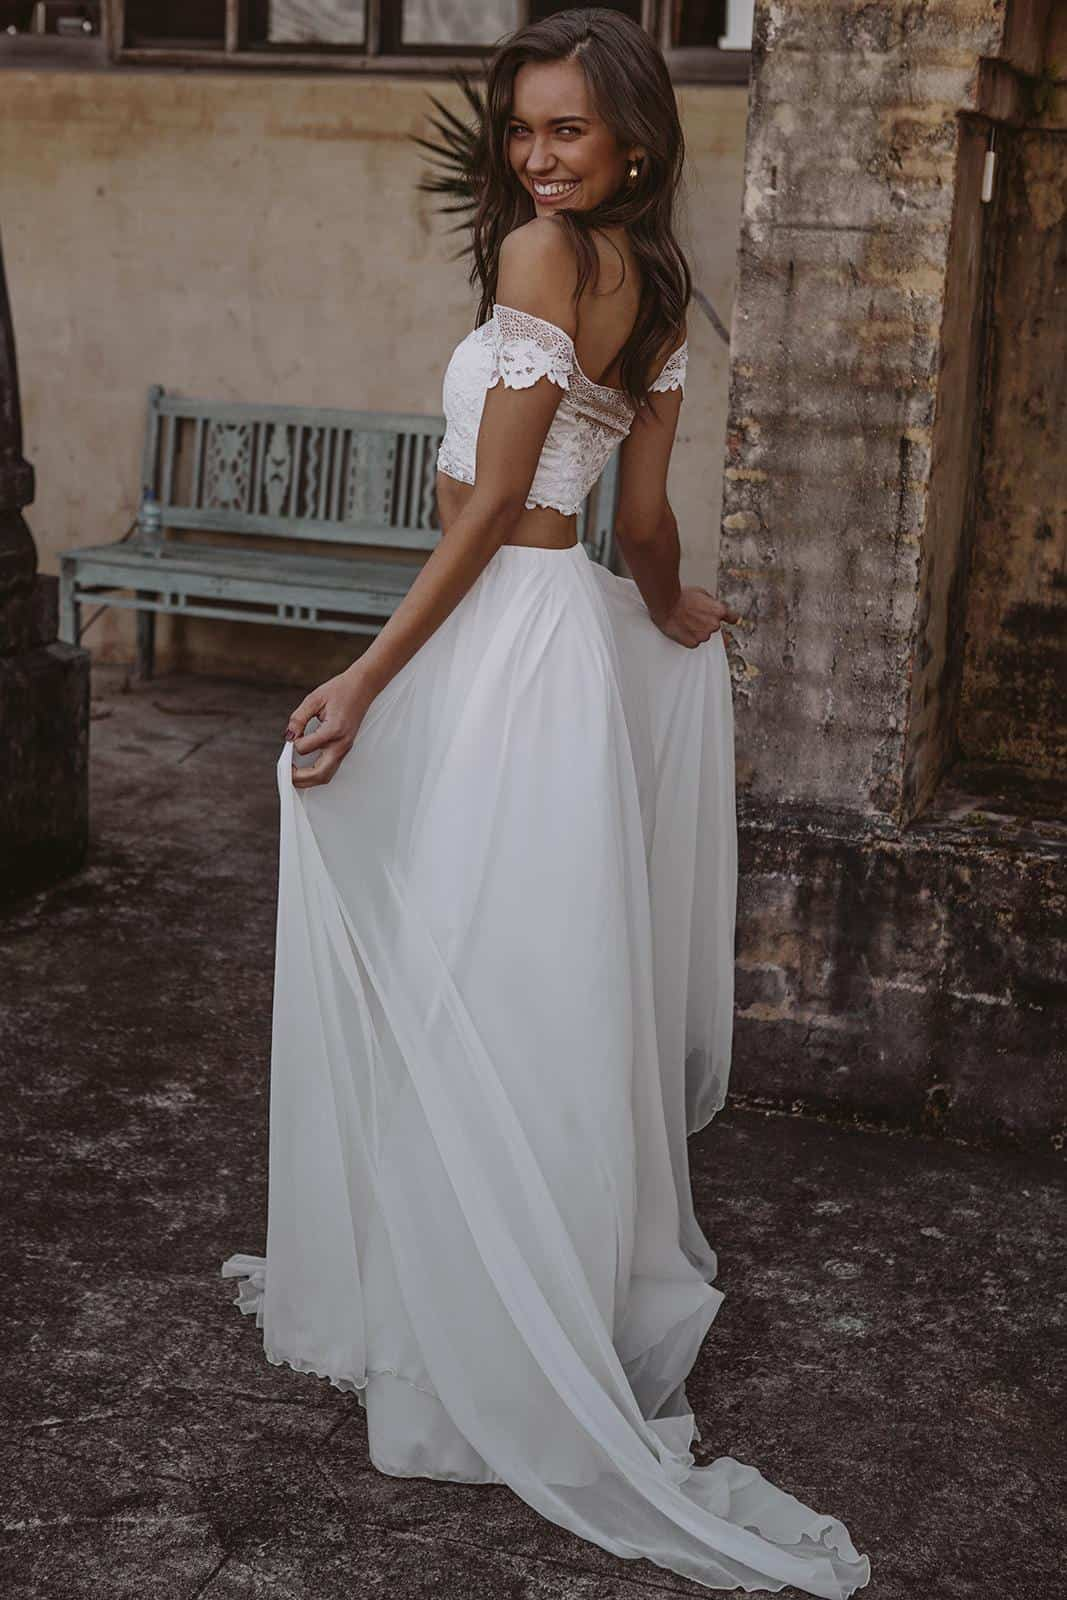 Boho Crop Top Silk Chiffon Skirt Wedding Dresses Inspiration French Lace Bridal Gowns Handmade by Grace Loves Lace Valeria